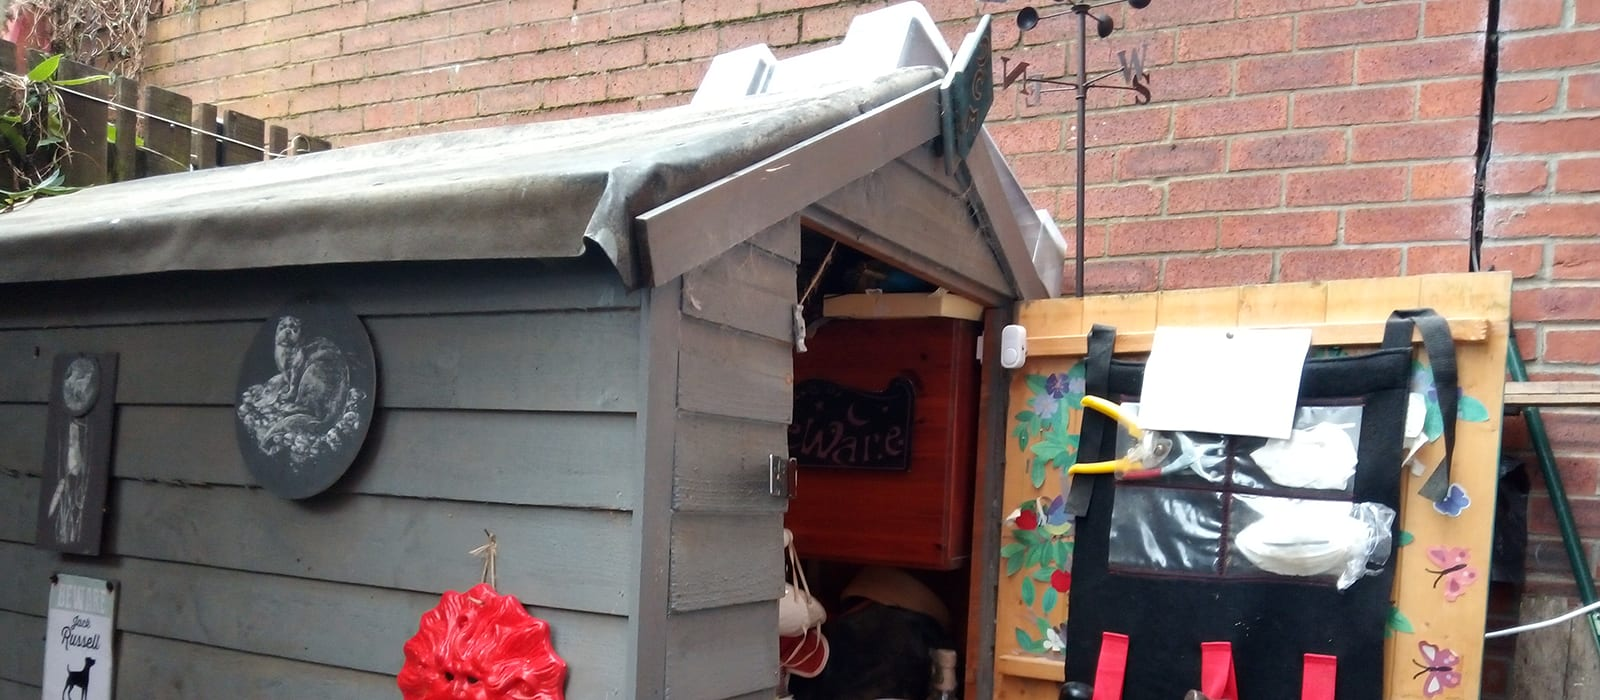 A wellbeing shed